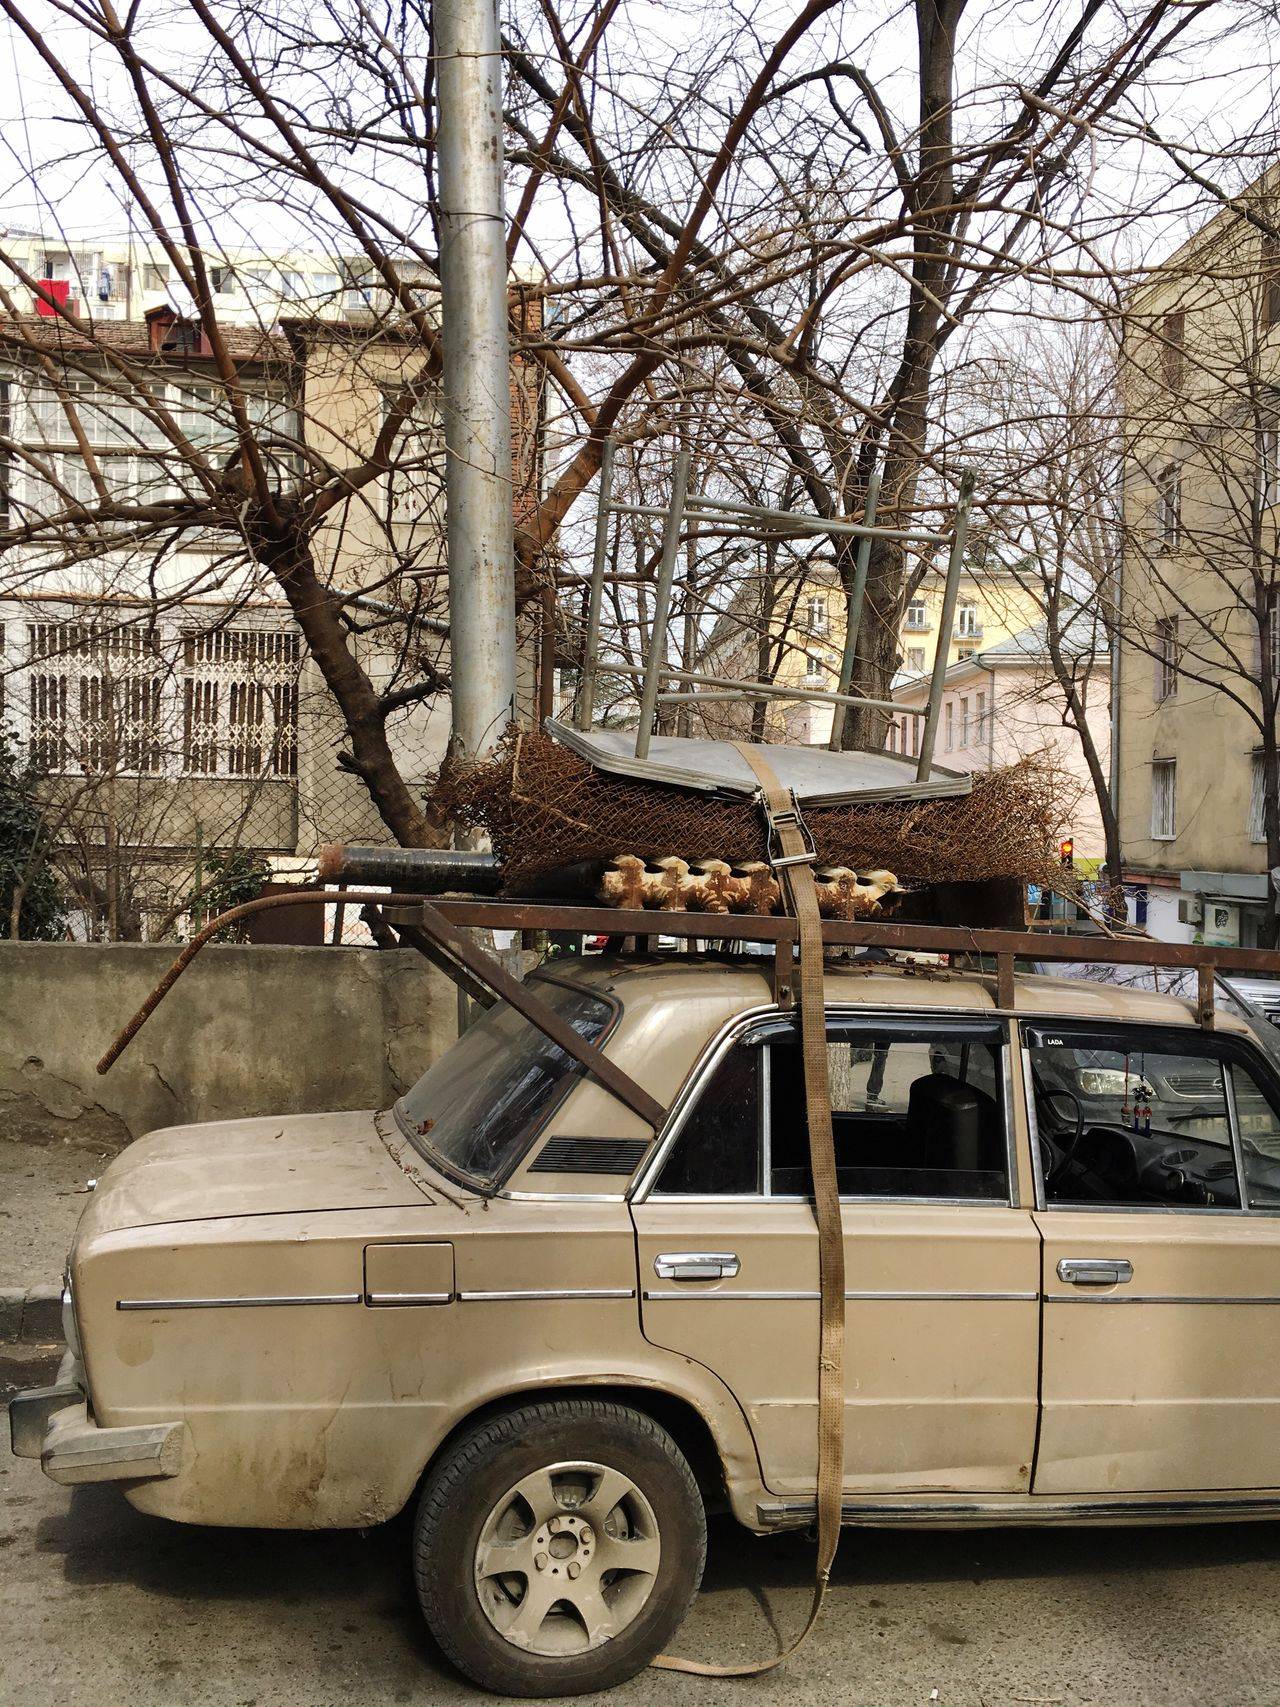 The mode of transport.. 😁🚘 Transportation Car Land Vehicle Mode Of Transport Stationary Outdoors No People City Tbilisi Old Car Junk Rusty Life In Tbilisi Shabby Moving Stuff Poor  Poor People  Brown